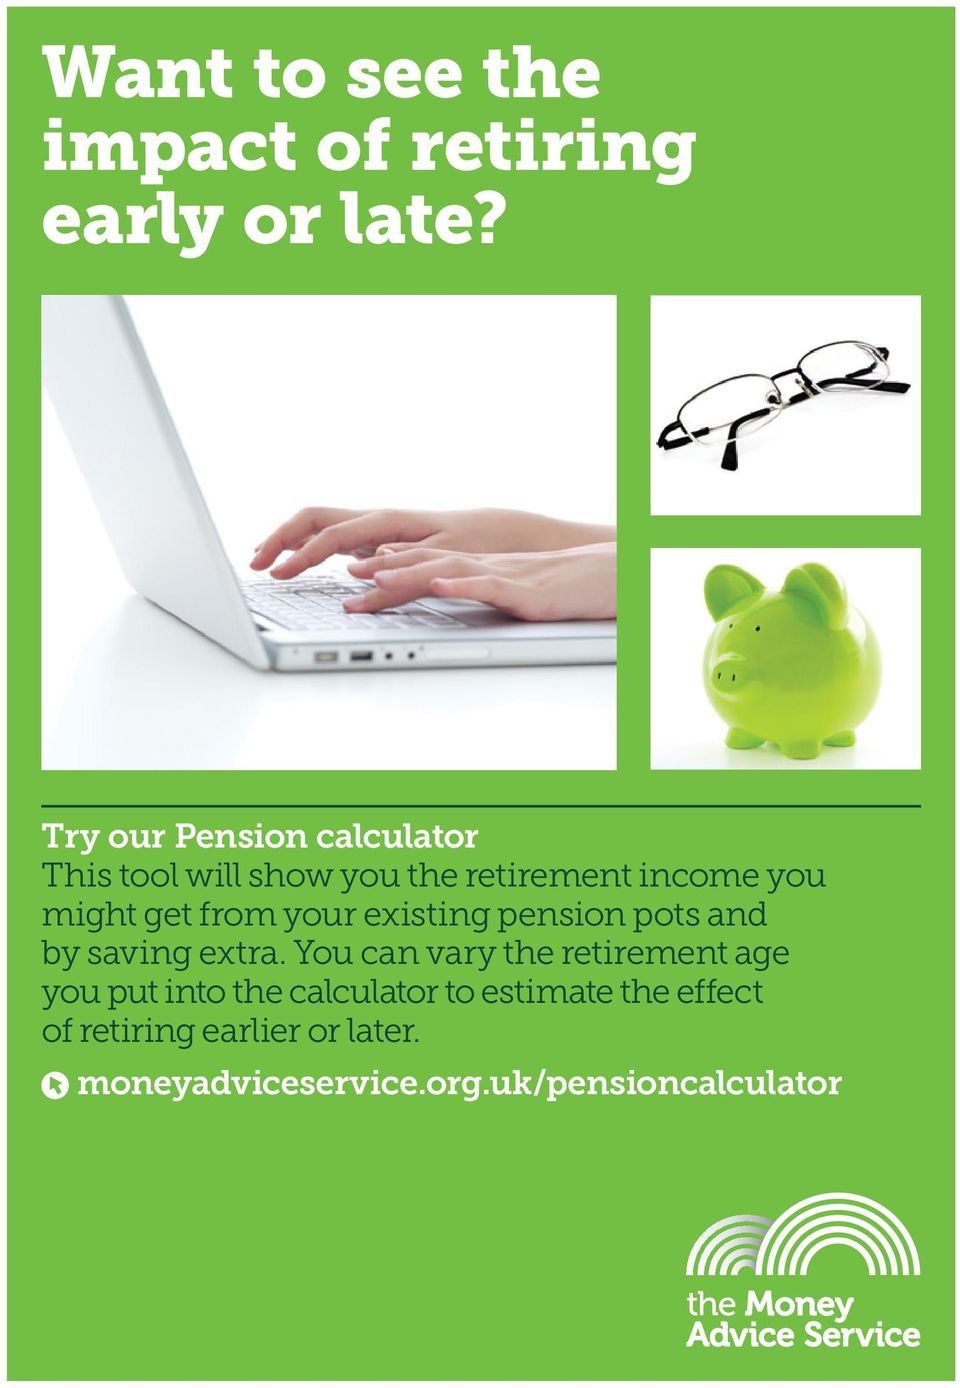 from your existing pension pots and by saving extra.